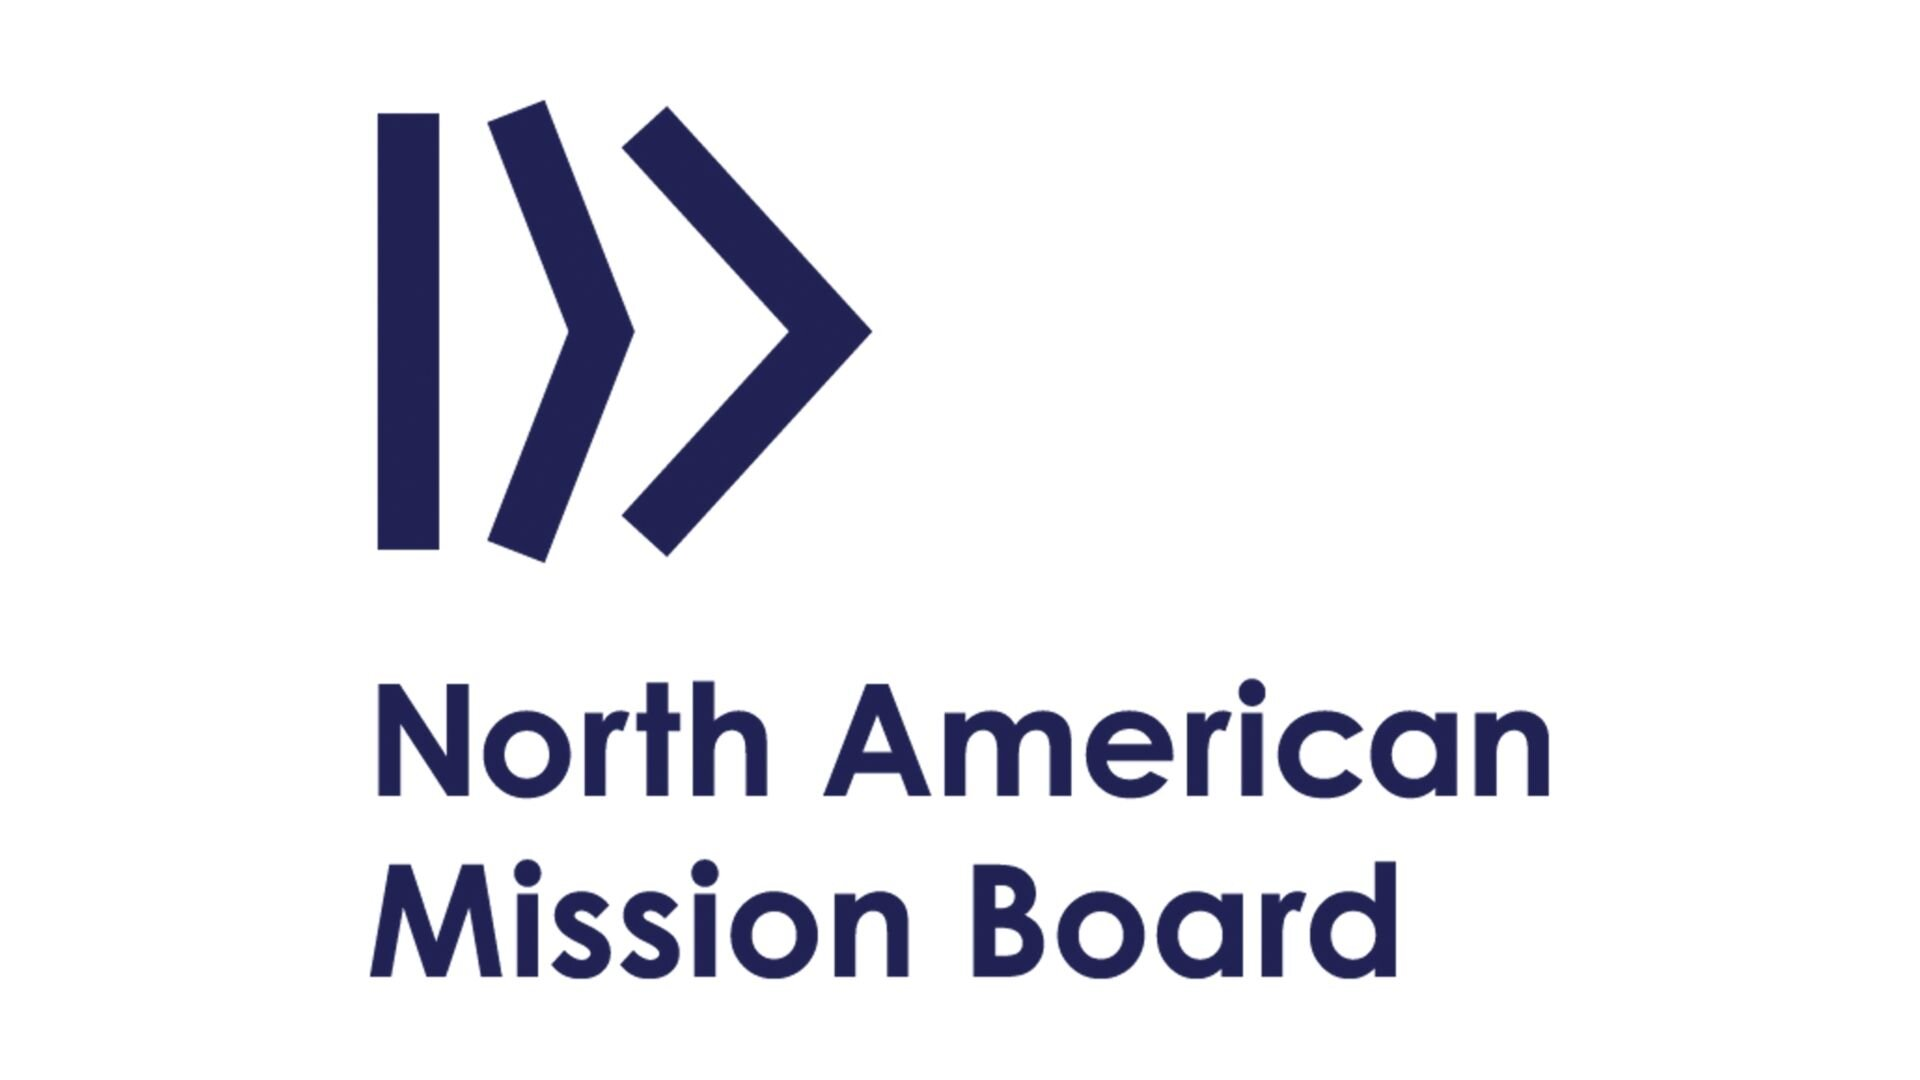 We're excited to partner with the  North American Mission Board  in our efforts to plant churches across the nation.